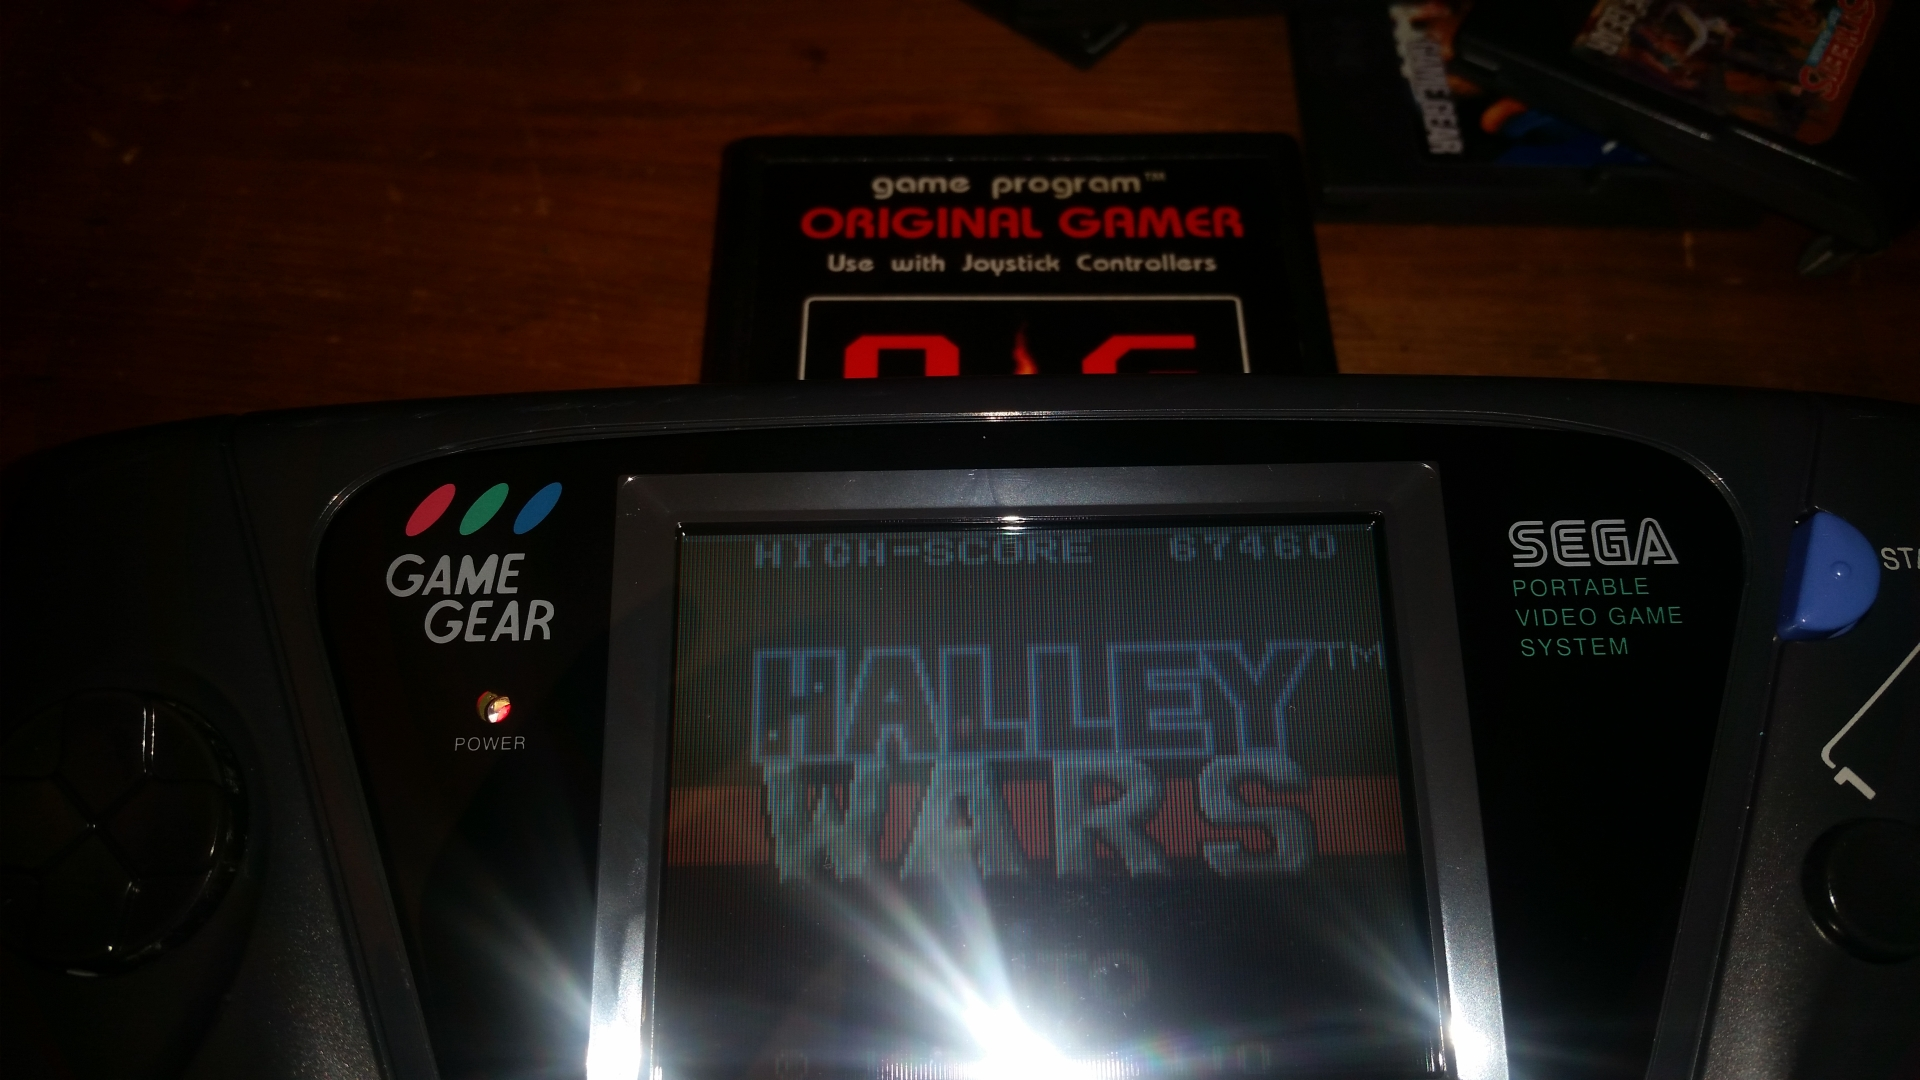 OriginalGamer: Halley Wars (Sega Game Gear) 67,460 points on 2018-03-24 21:51:15